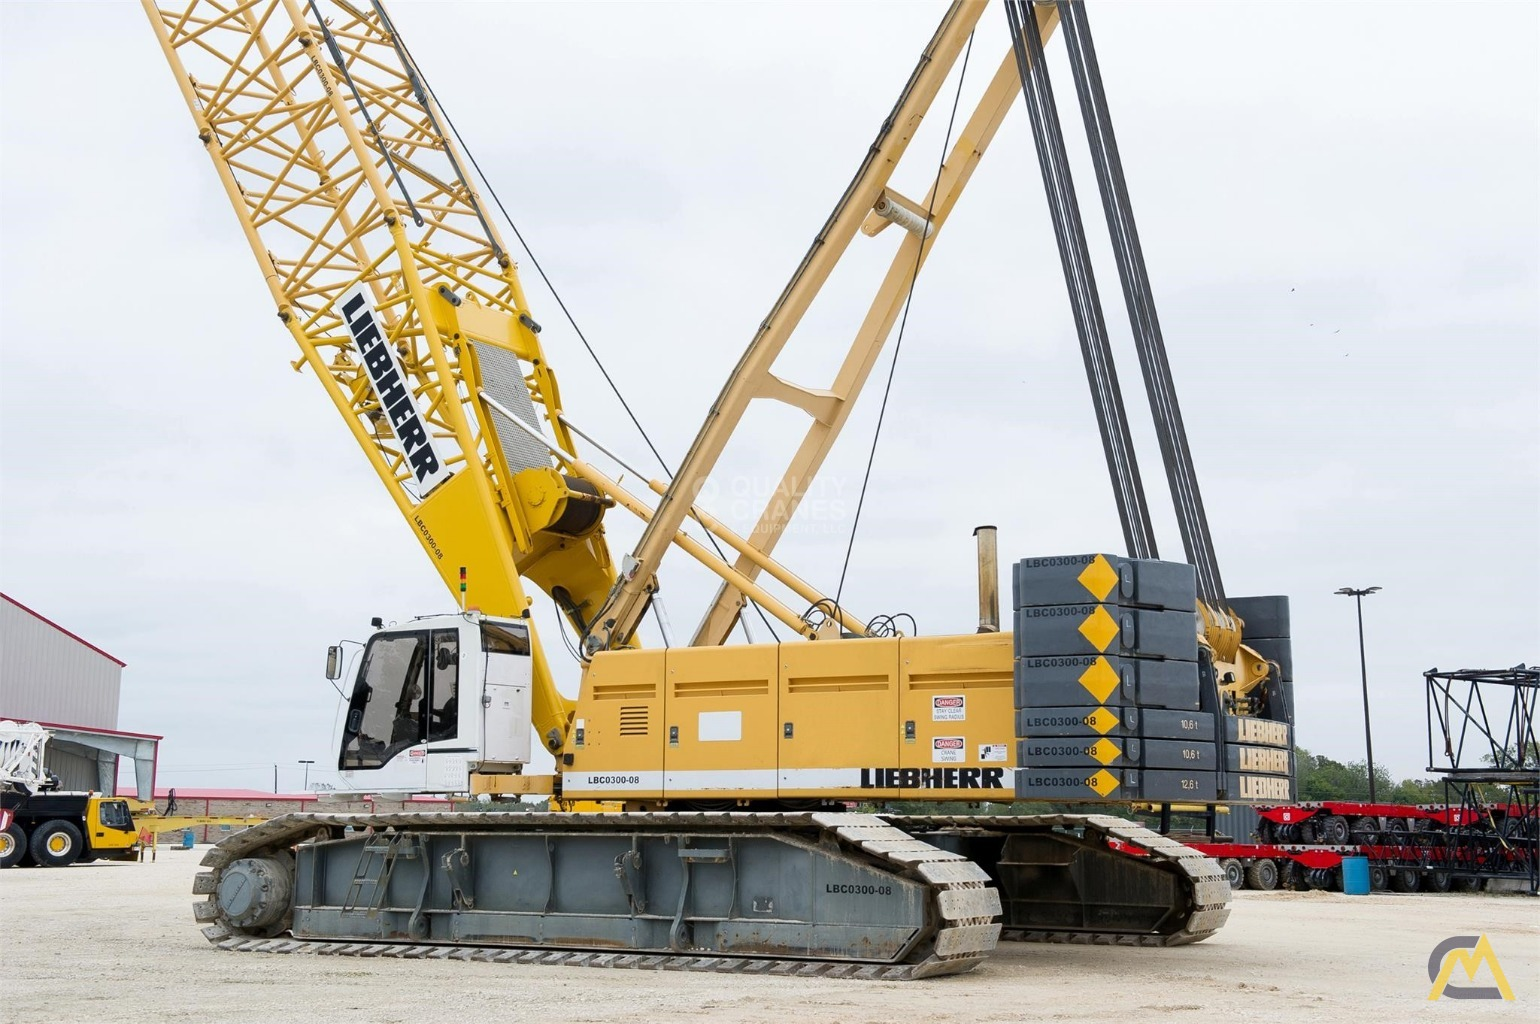 Liebherr LR 1280 300-Ton Lattice Boom Crawler Crane 2